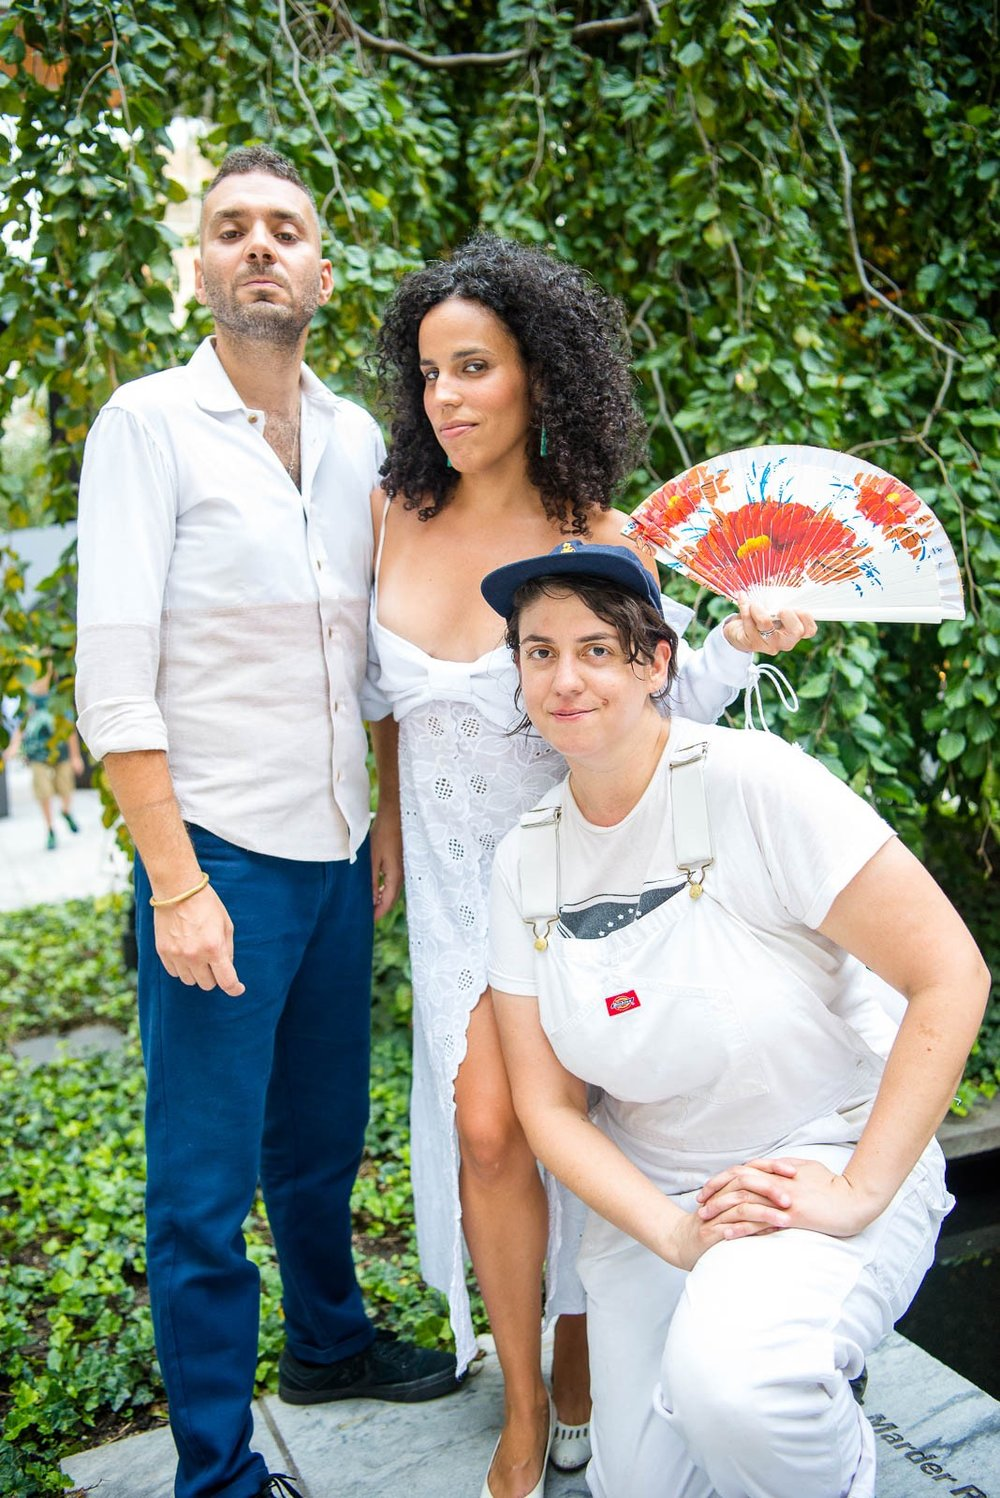 Marco Buccelli, Maia McDonald and  Xenia Rubinos after their performance in MoMA's sculpture garden on Thursday, August 8, 2018.